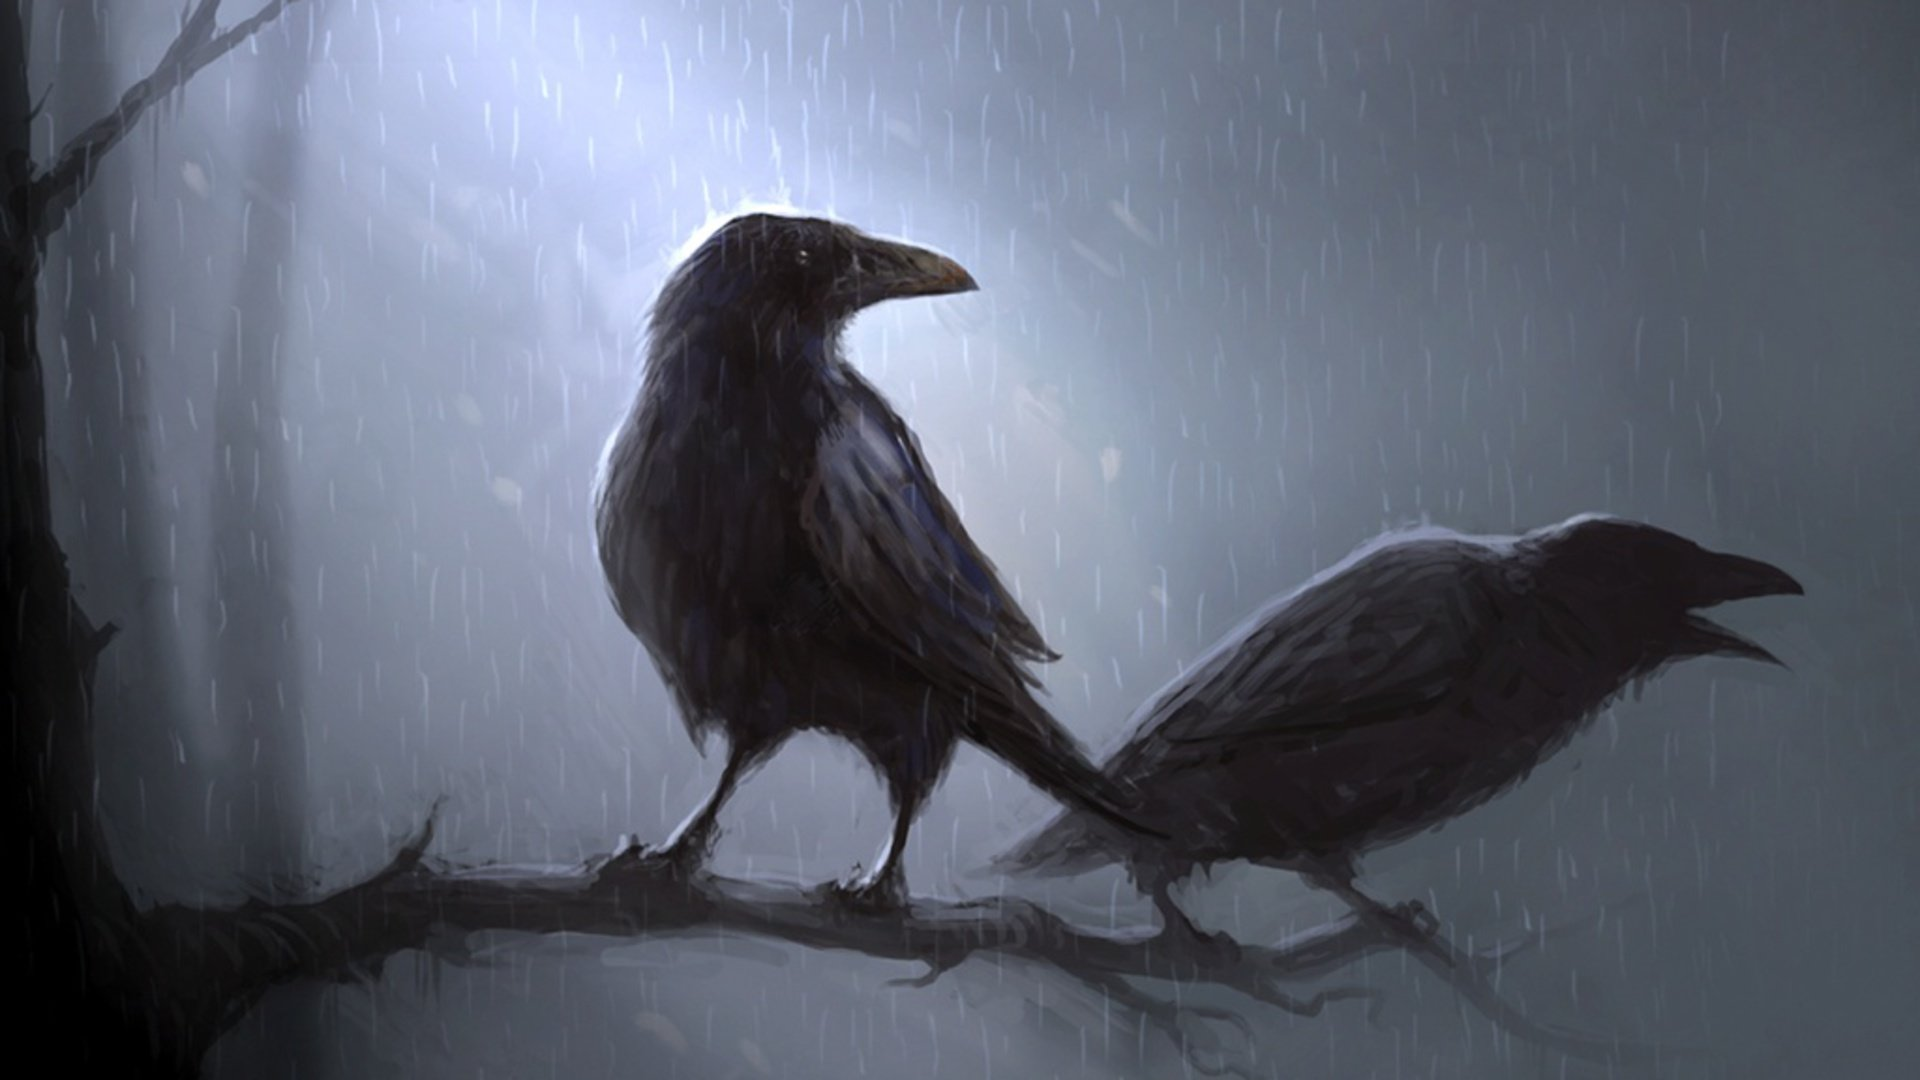 Download full hd 1080p Crow PC background ID:466123 for free